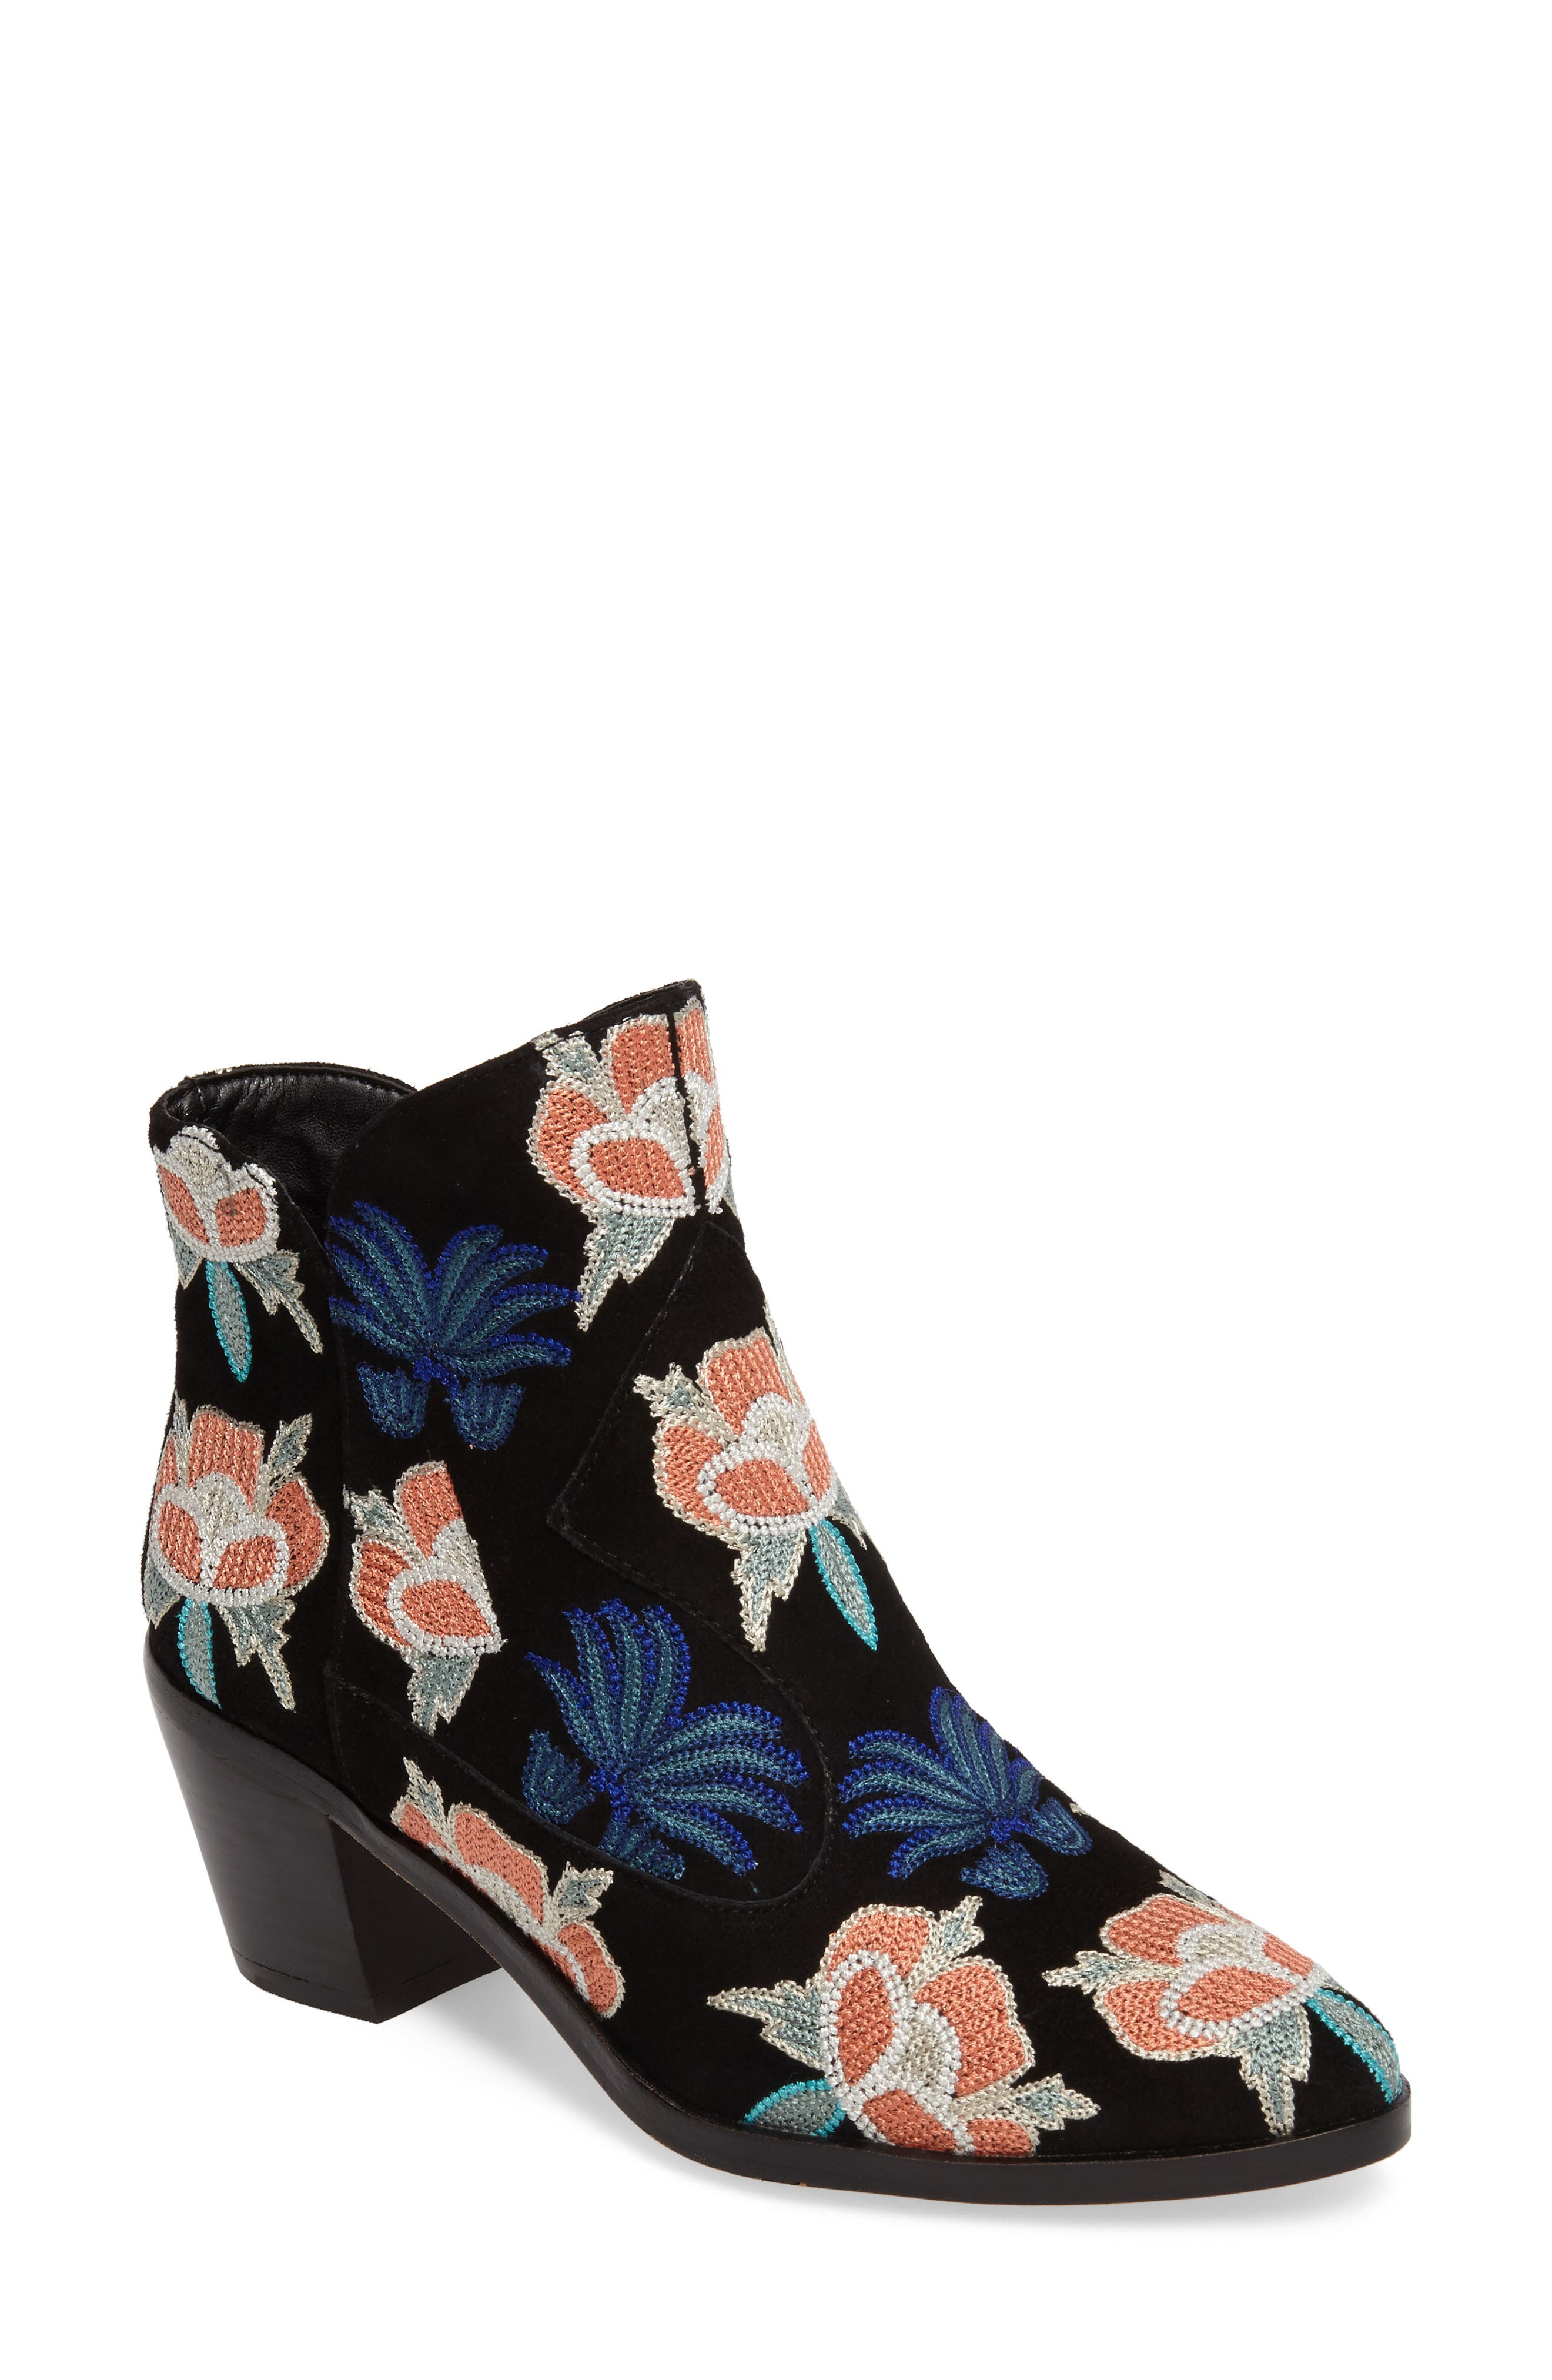 Lulu Too Flower Embroidered Bootie,                         Main,                         color, Black Suede